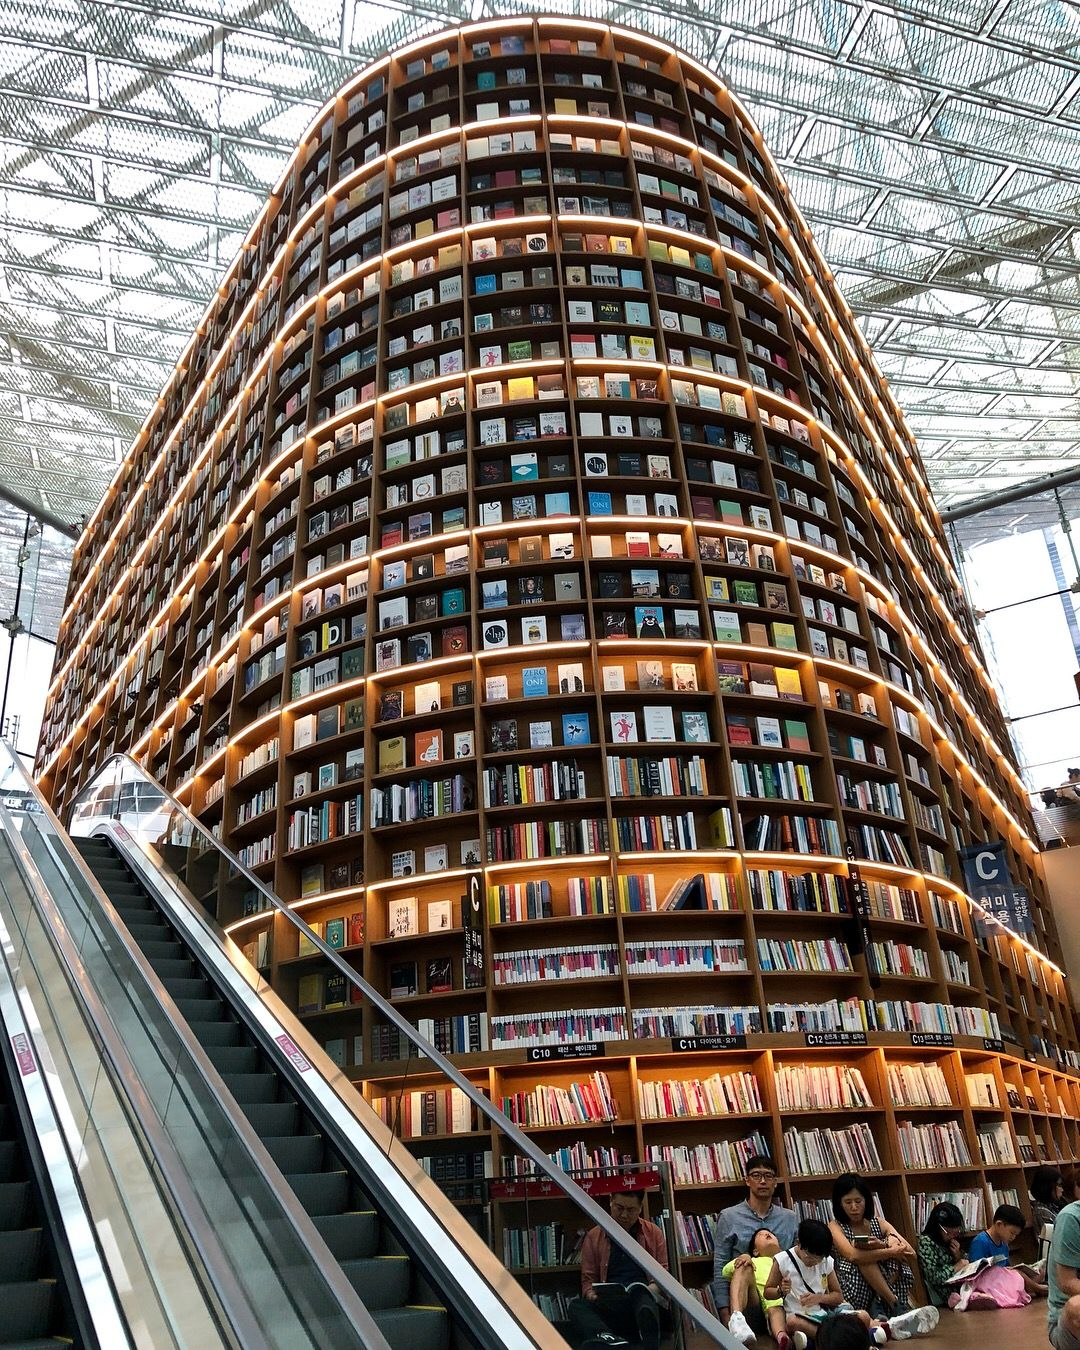 Starfield library in the Coex Mall | Seoul Korea in 2019 ...